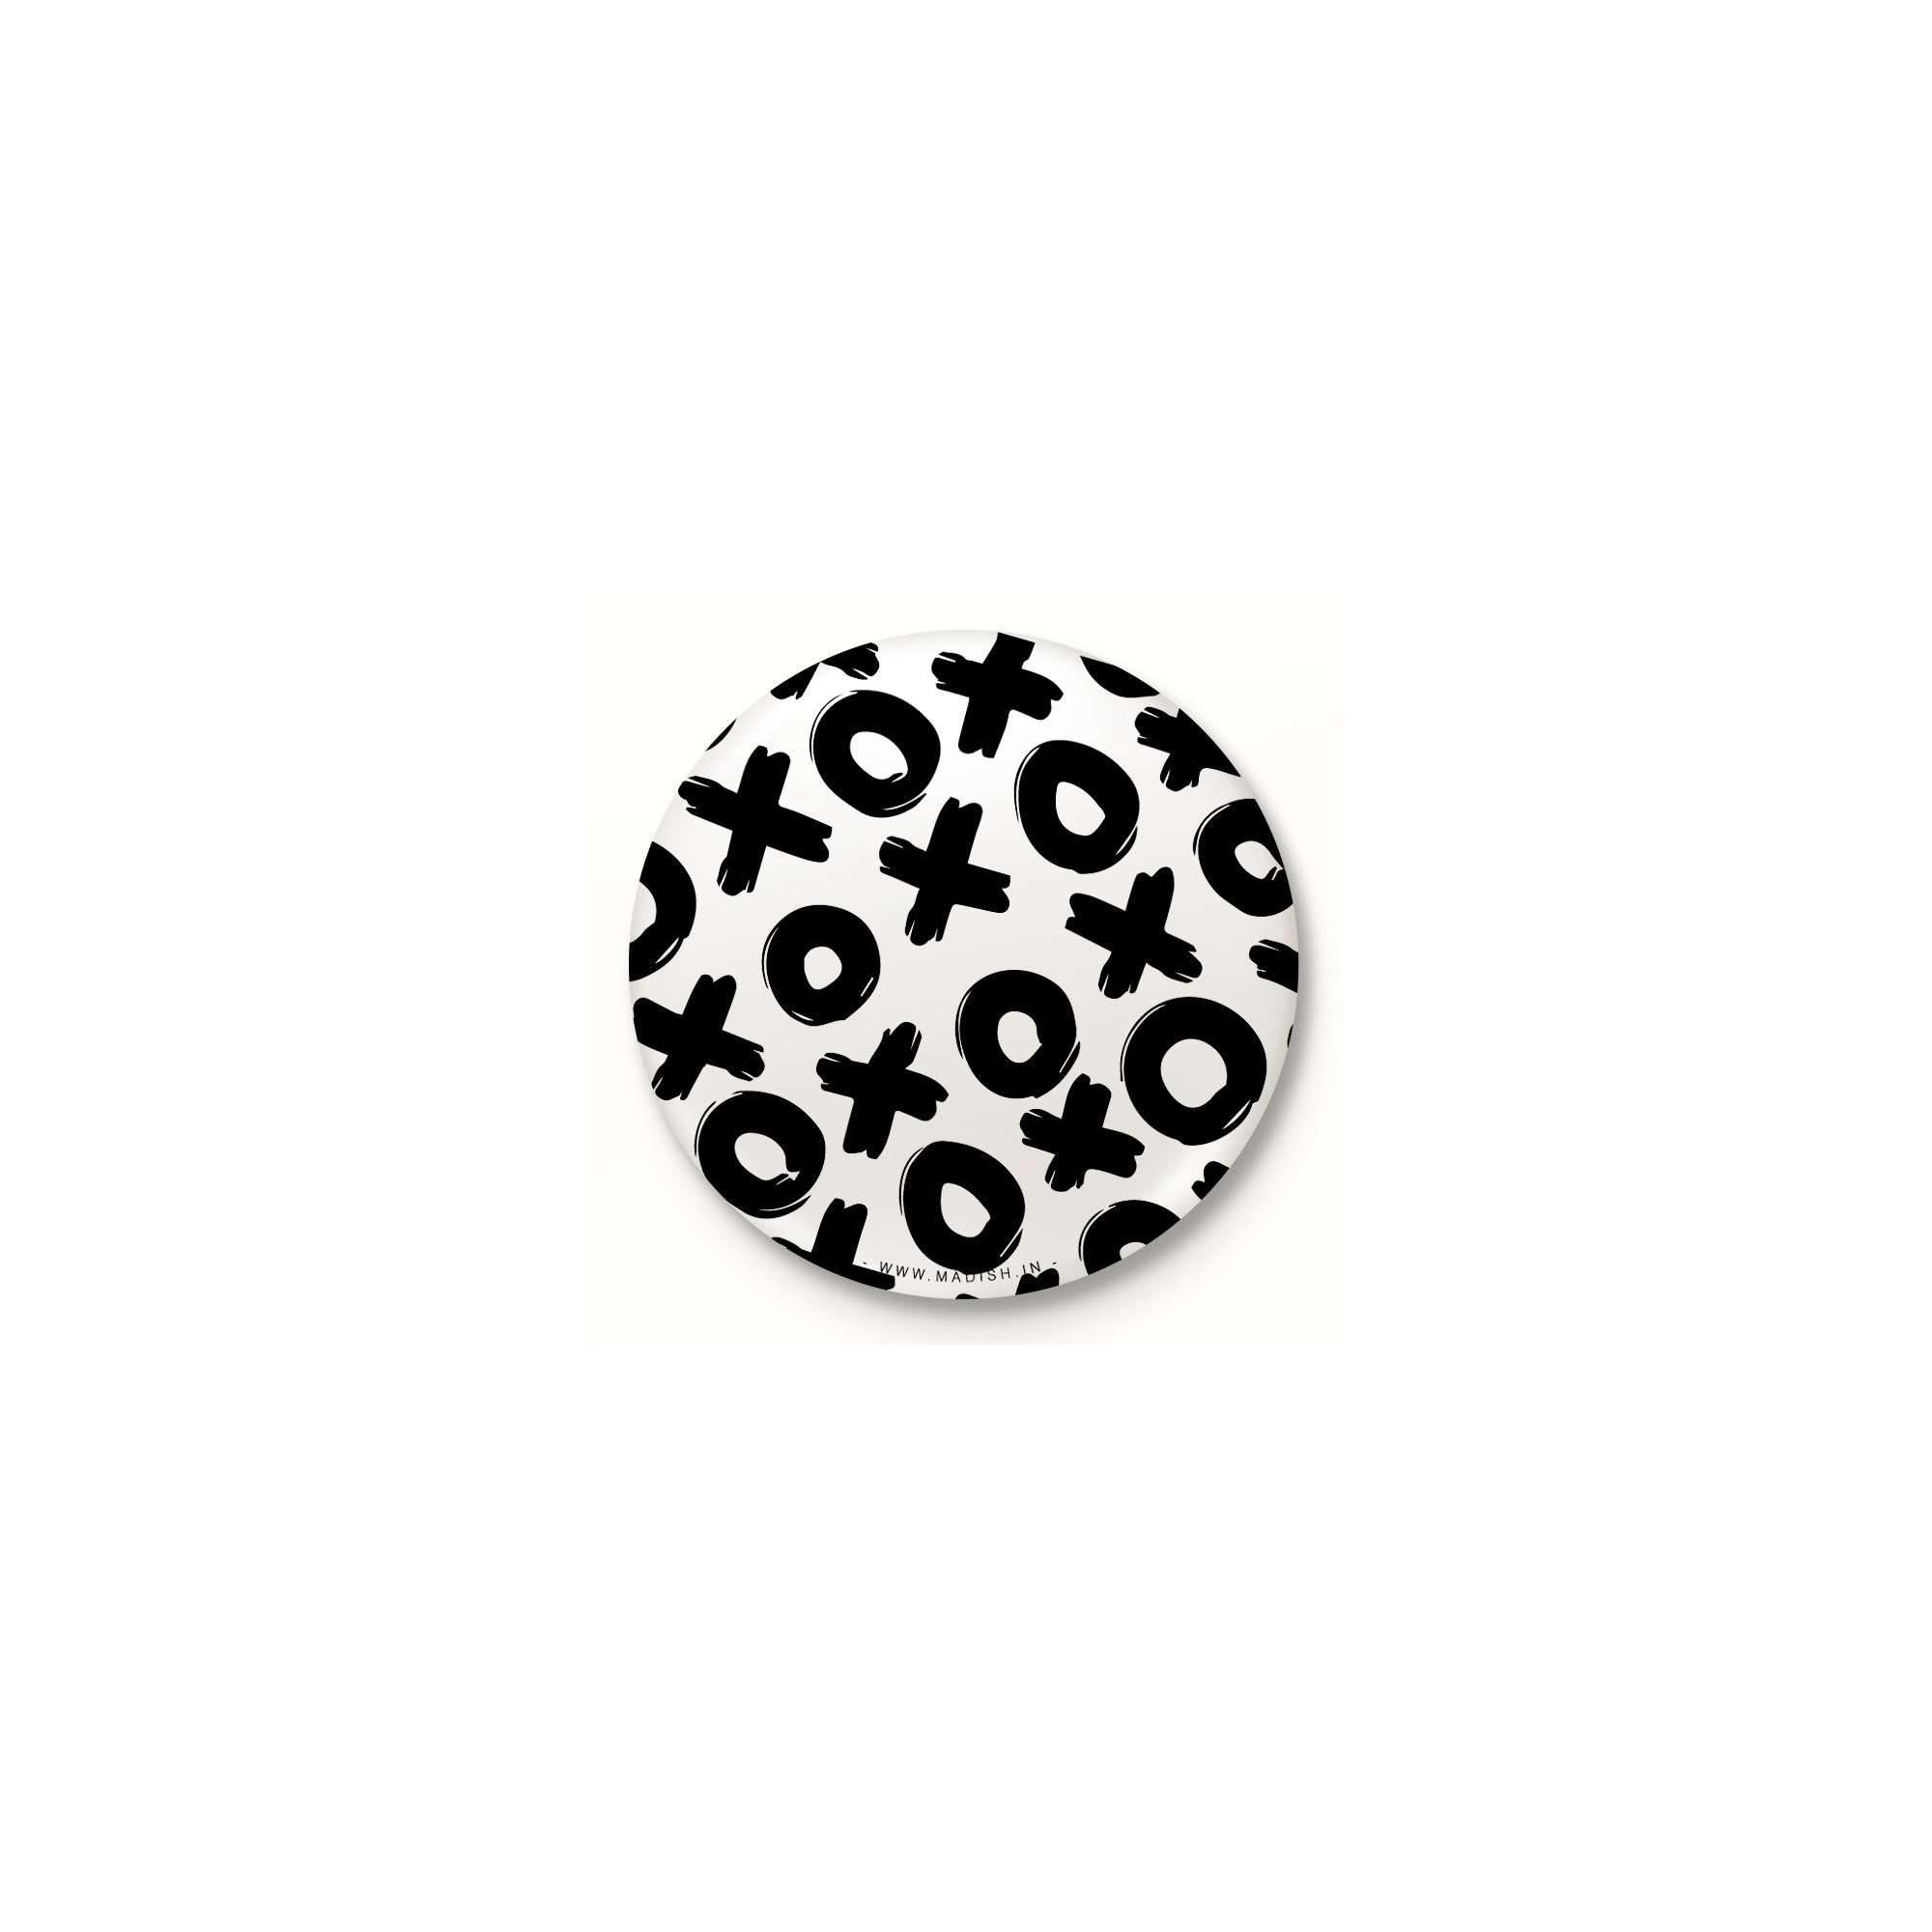 Tic Tac Toe Button Badge Accessories Madish